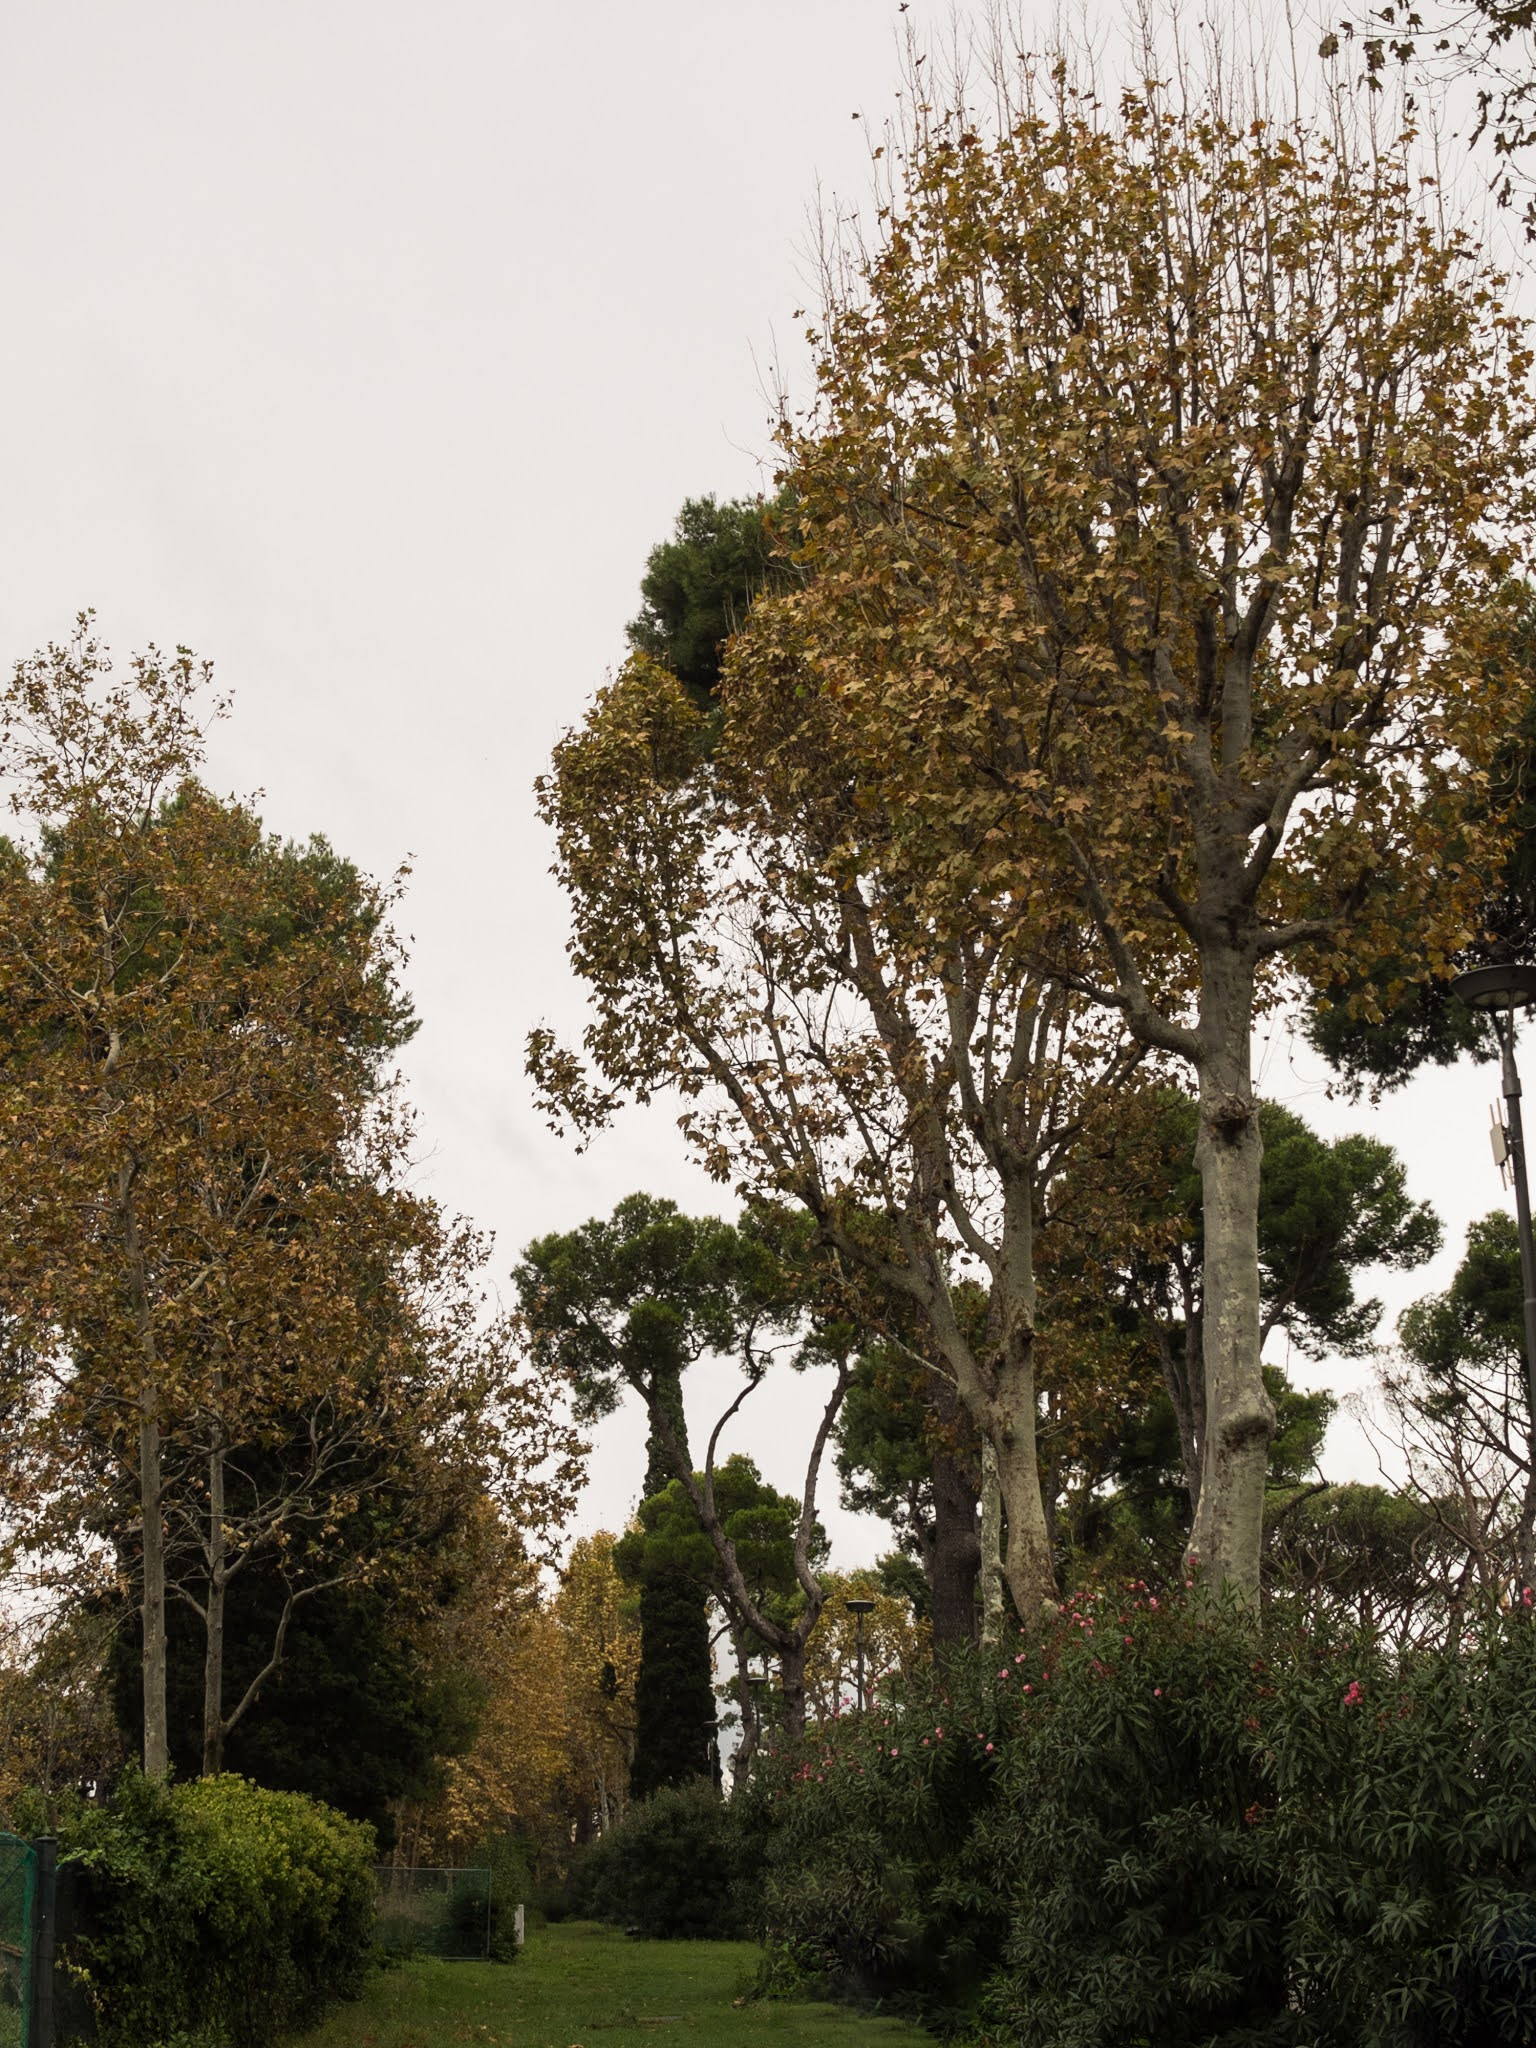 A mix of evergreens and autumnal maple trees in the Park of Pompeii.